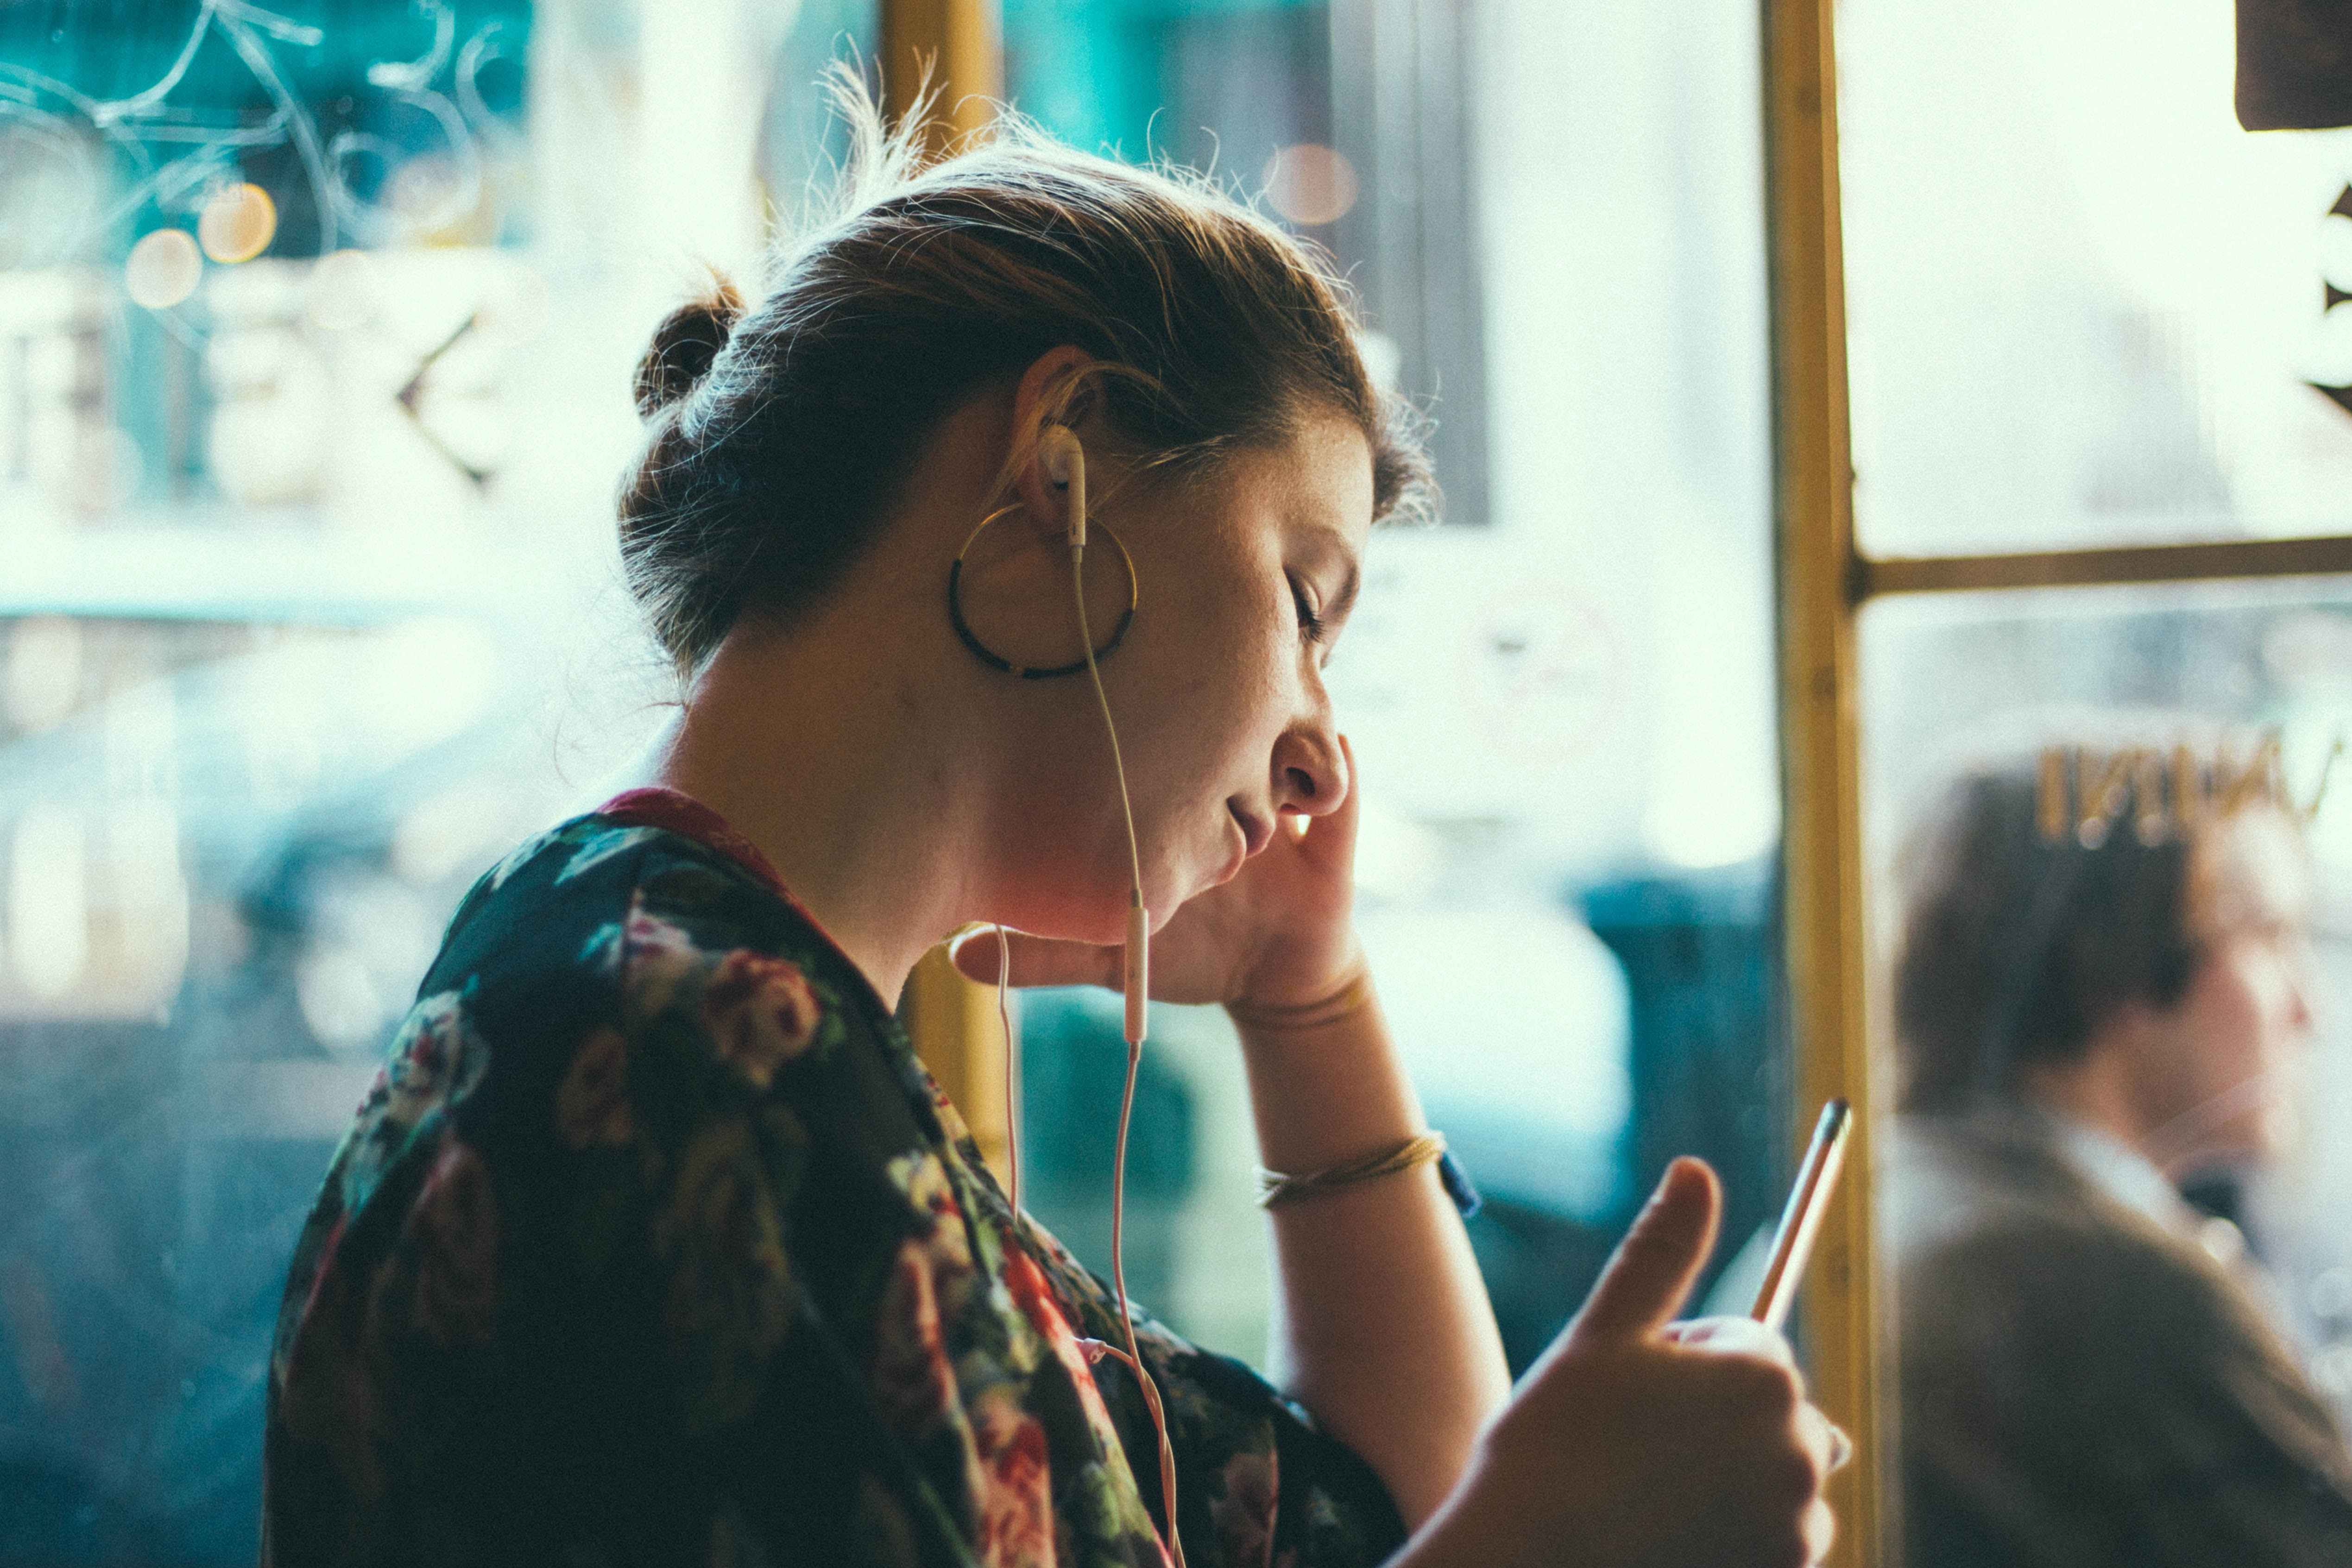 woman listening using white earphones